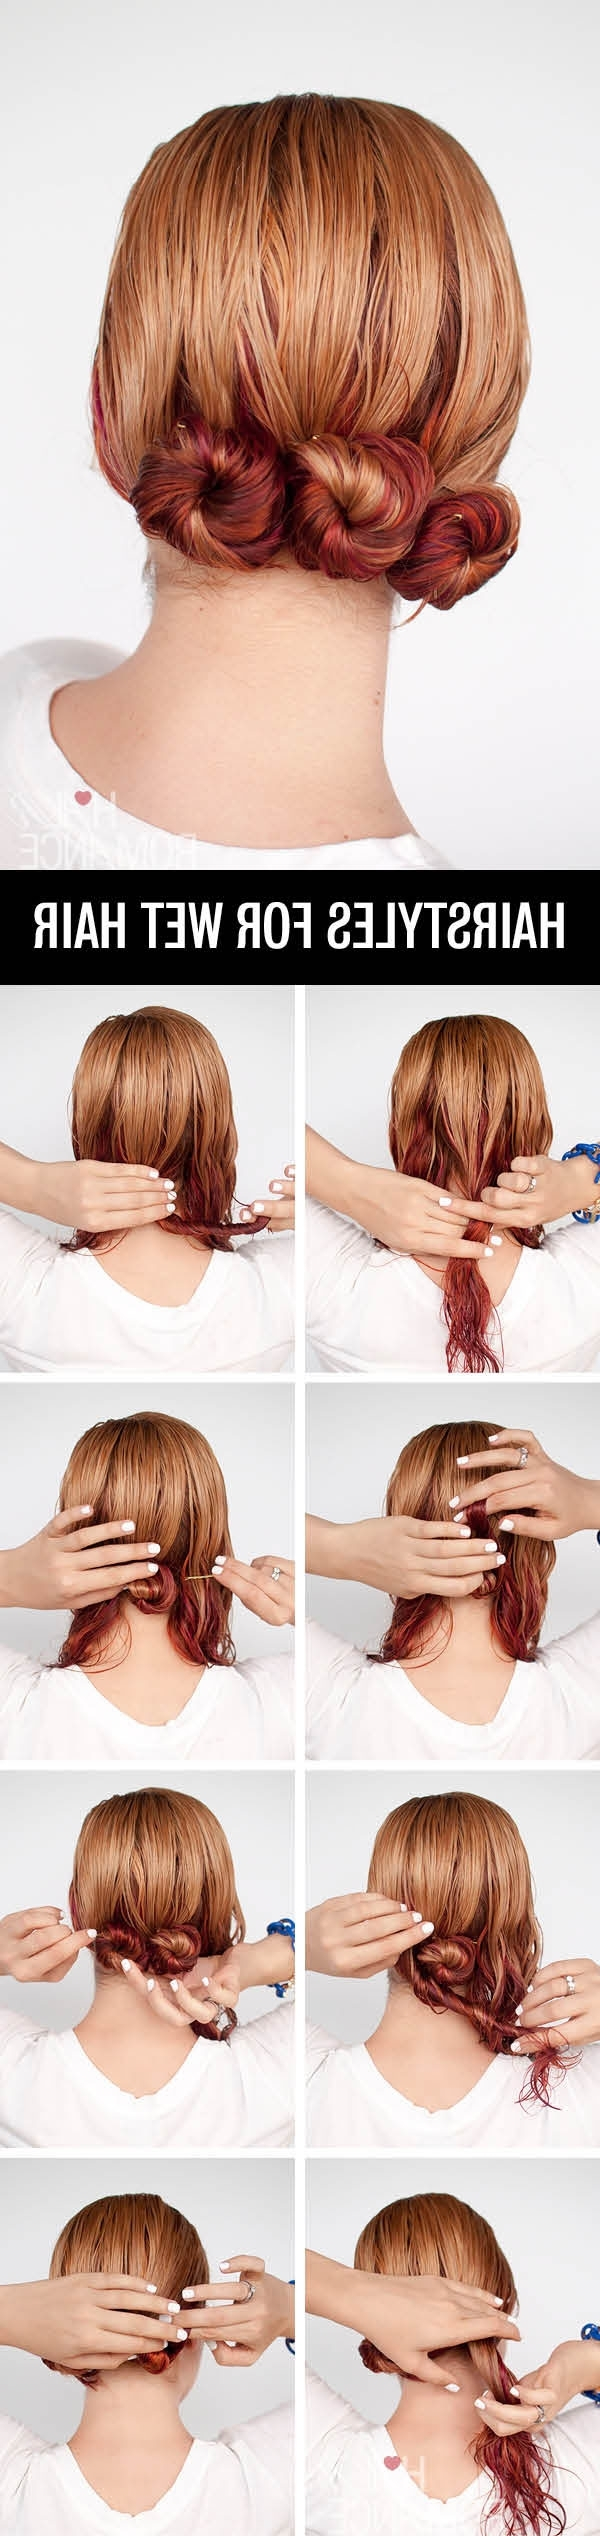 Get Ready Fast With 7 Easy Hairstyle Tutorials For Wet Hair – Hair Throughout Well Known Romantic Twisted Hairdo Hairstyles (View 7 of 20)